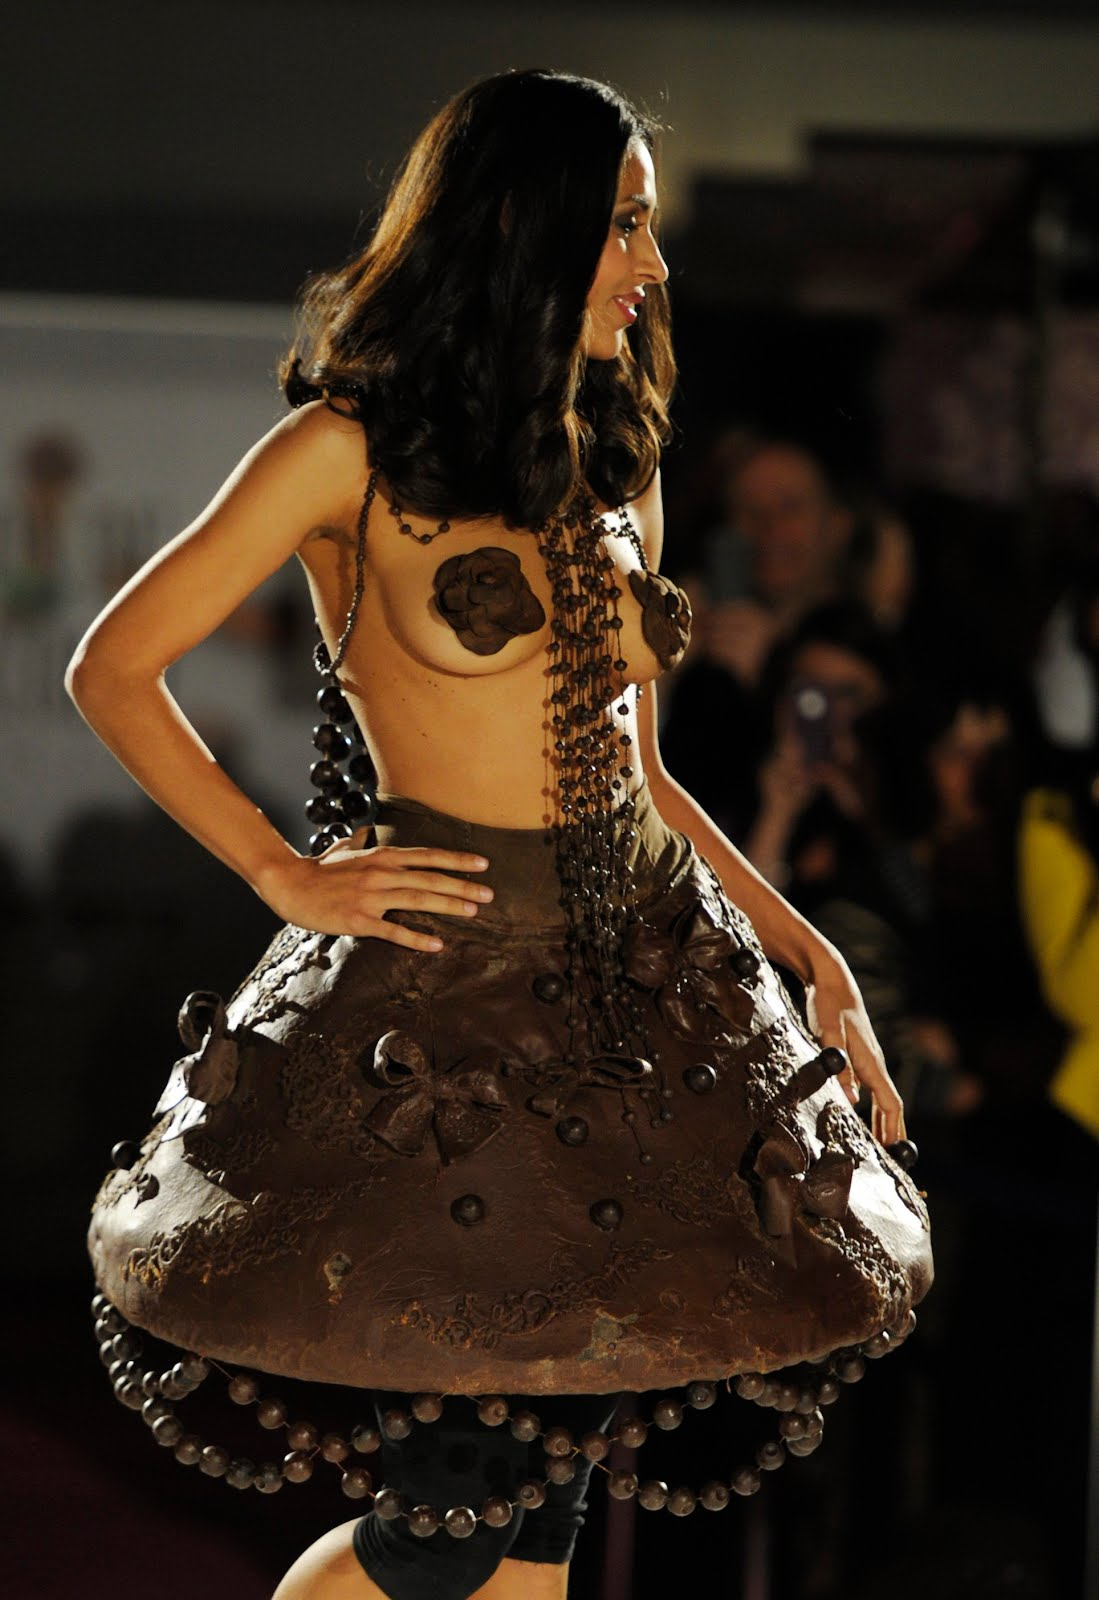 TONY PHYRILLAS ON POLITICS: A dress made out of chocolate?